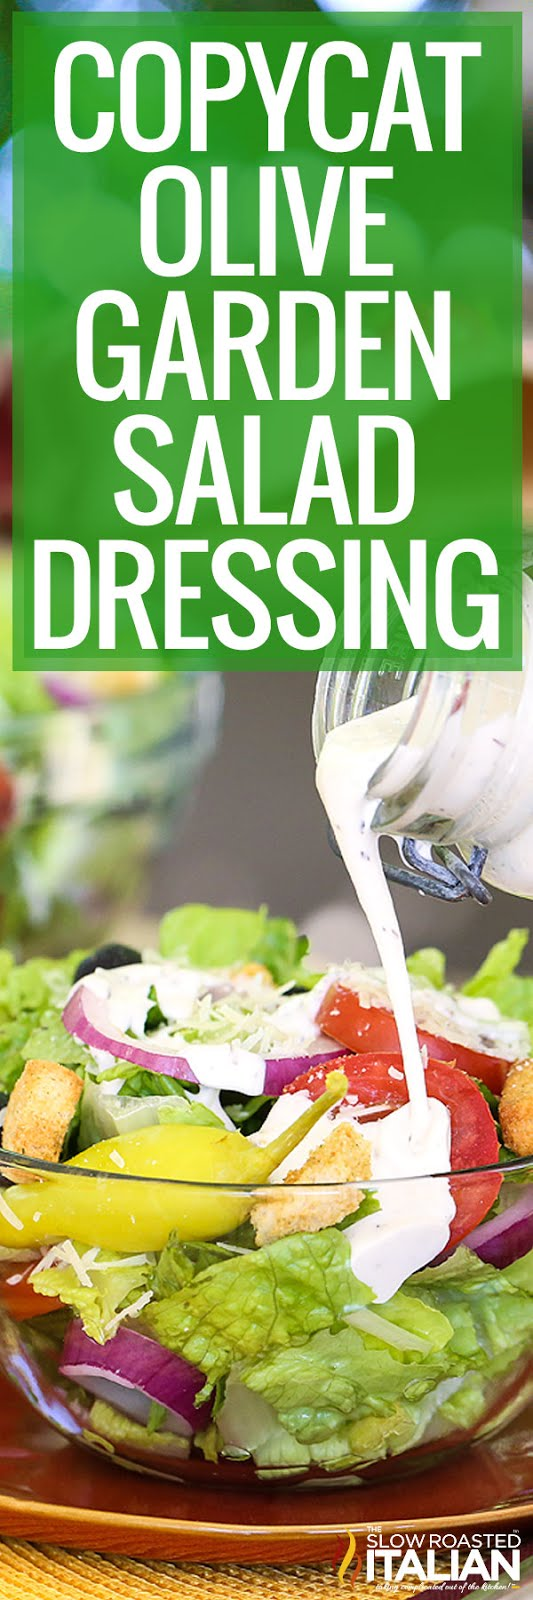 long photo of salad with dressing poured over top